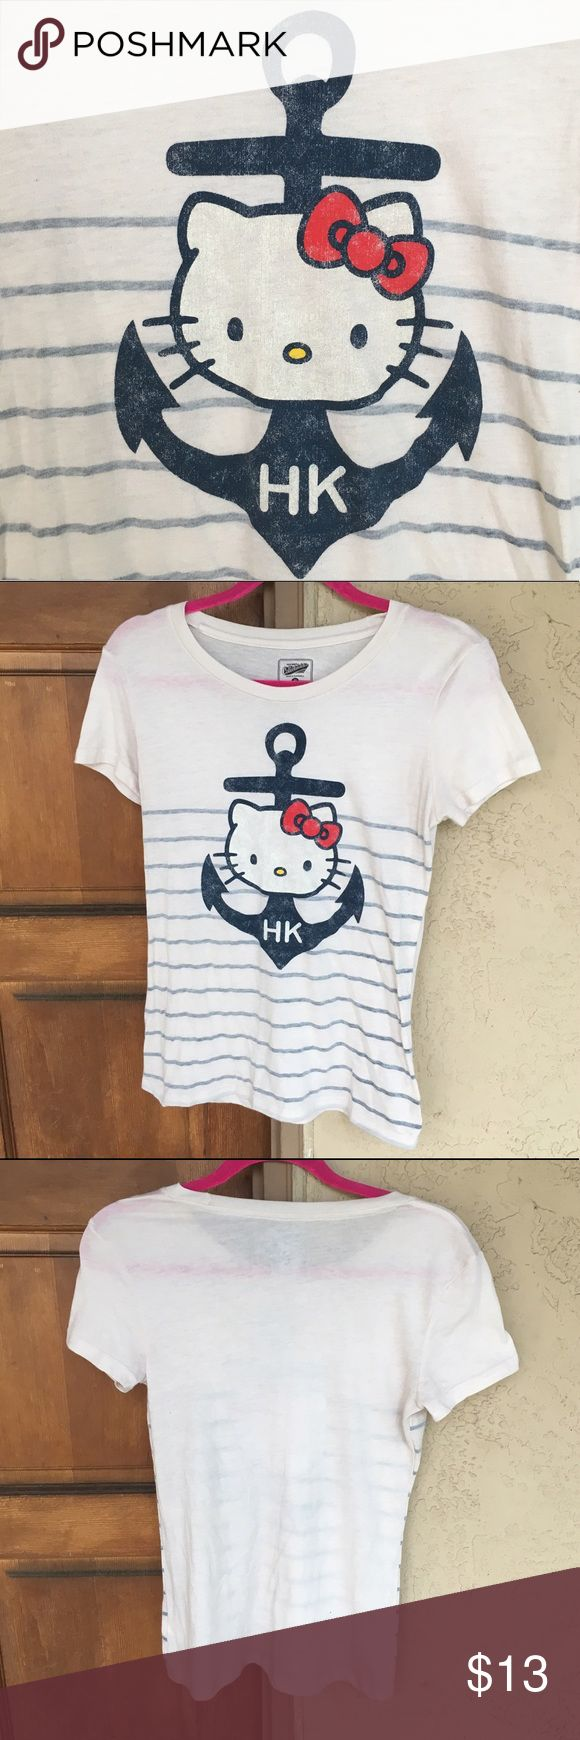 🆕 Nautical Hello Kitty Tee ✨Brand New!✨ Super cute basic cream tee with nautical Hello Kitty theme screen-print, navy anchor & horizontal stripes by Old Navy Collectabilities Collection. Size XS, could also fit a S/M. Comfy & stretchy 50% cotton & 50% poly. Never worn & no flaws! 🚫No Trades or Paypal. 👍15% off 3+ item bundles! Old Navy Tops Tees - Short Sleeve